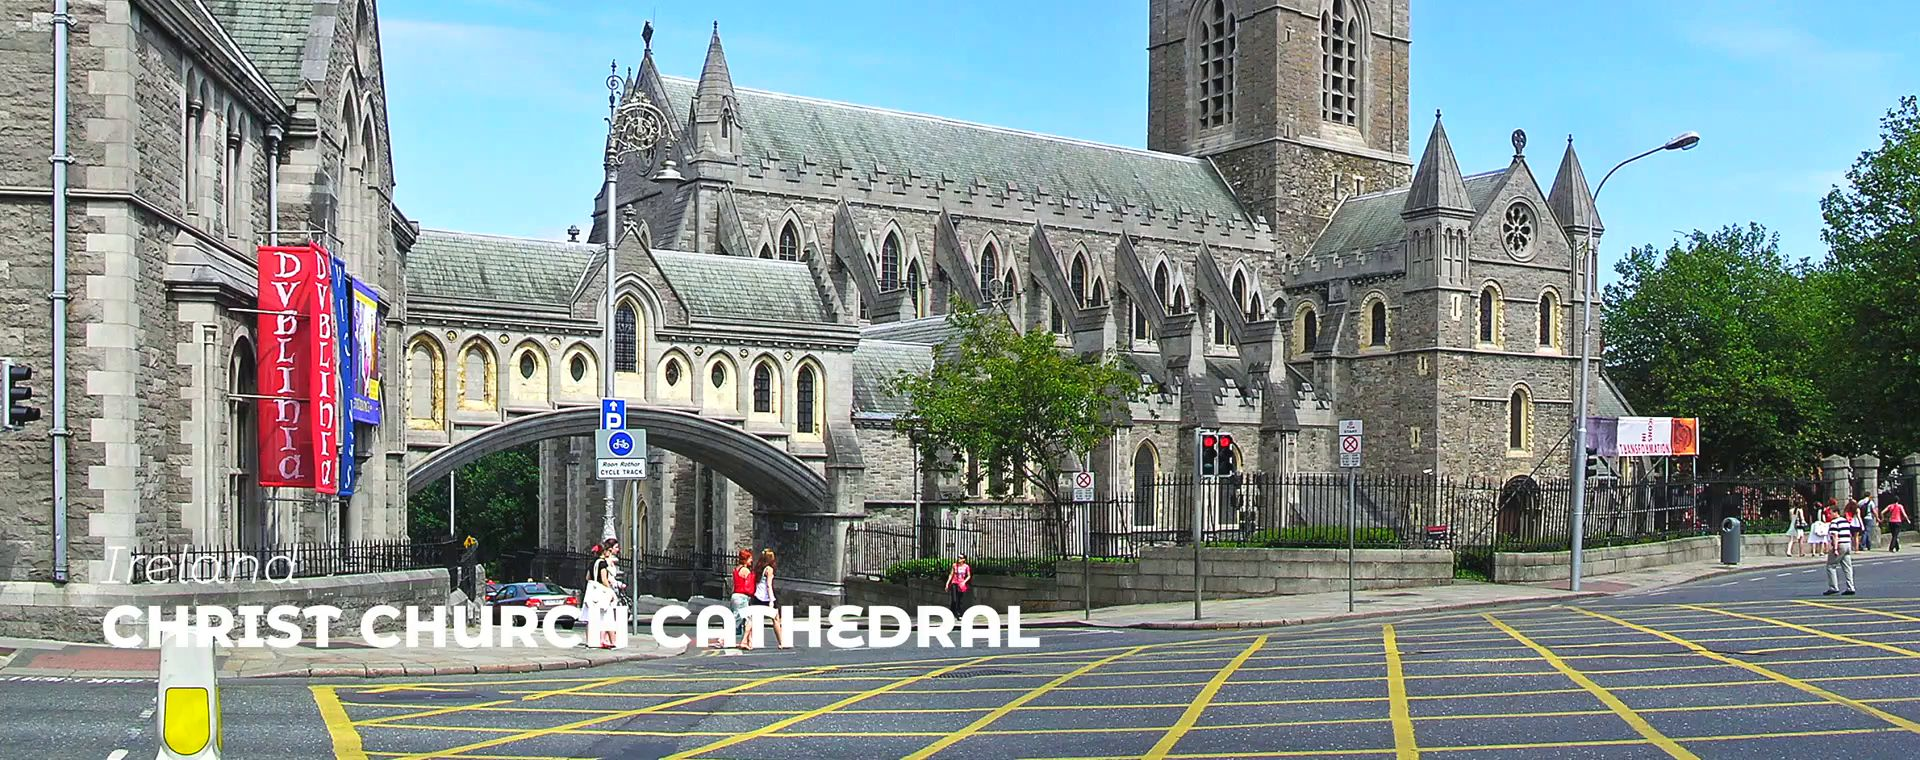 THE CHRIST CHURCH CATHEDRAL